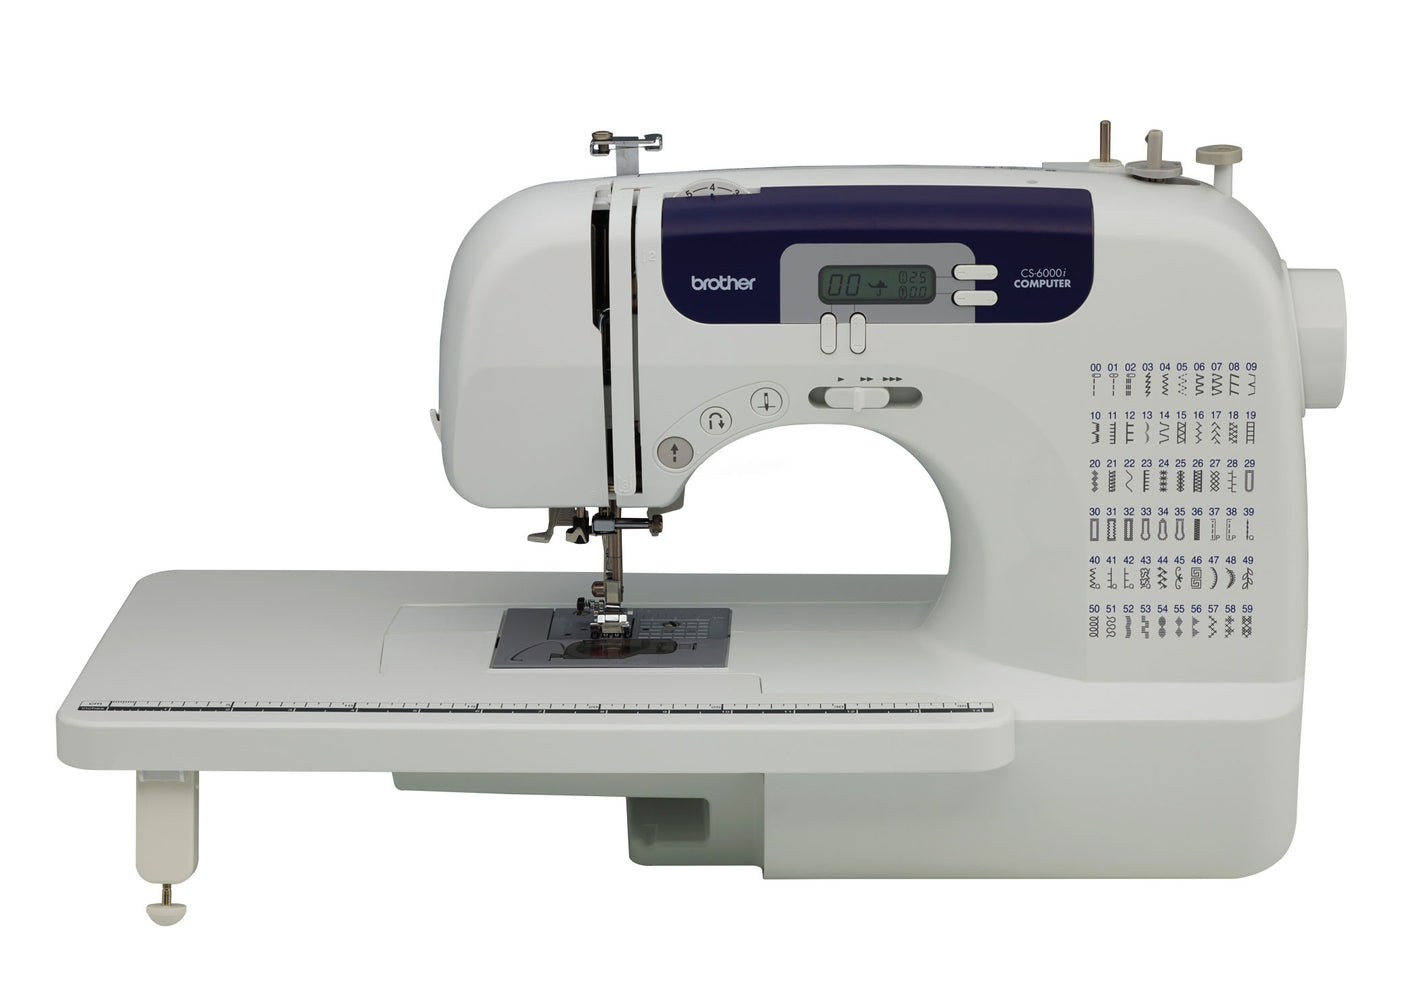 Brother CS6000i Feature-Rich Computerized Sewing Machine With 60 Built-In Stitches